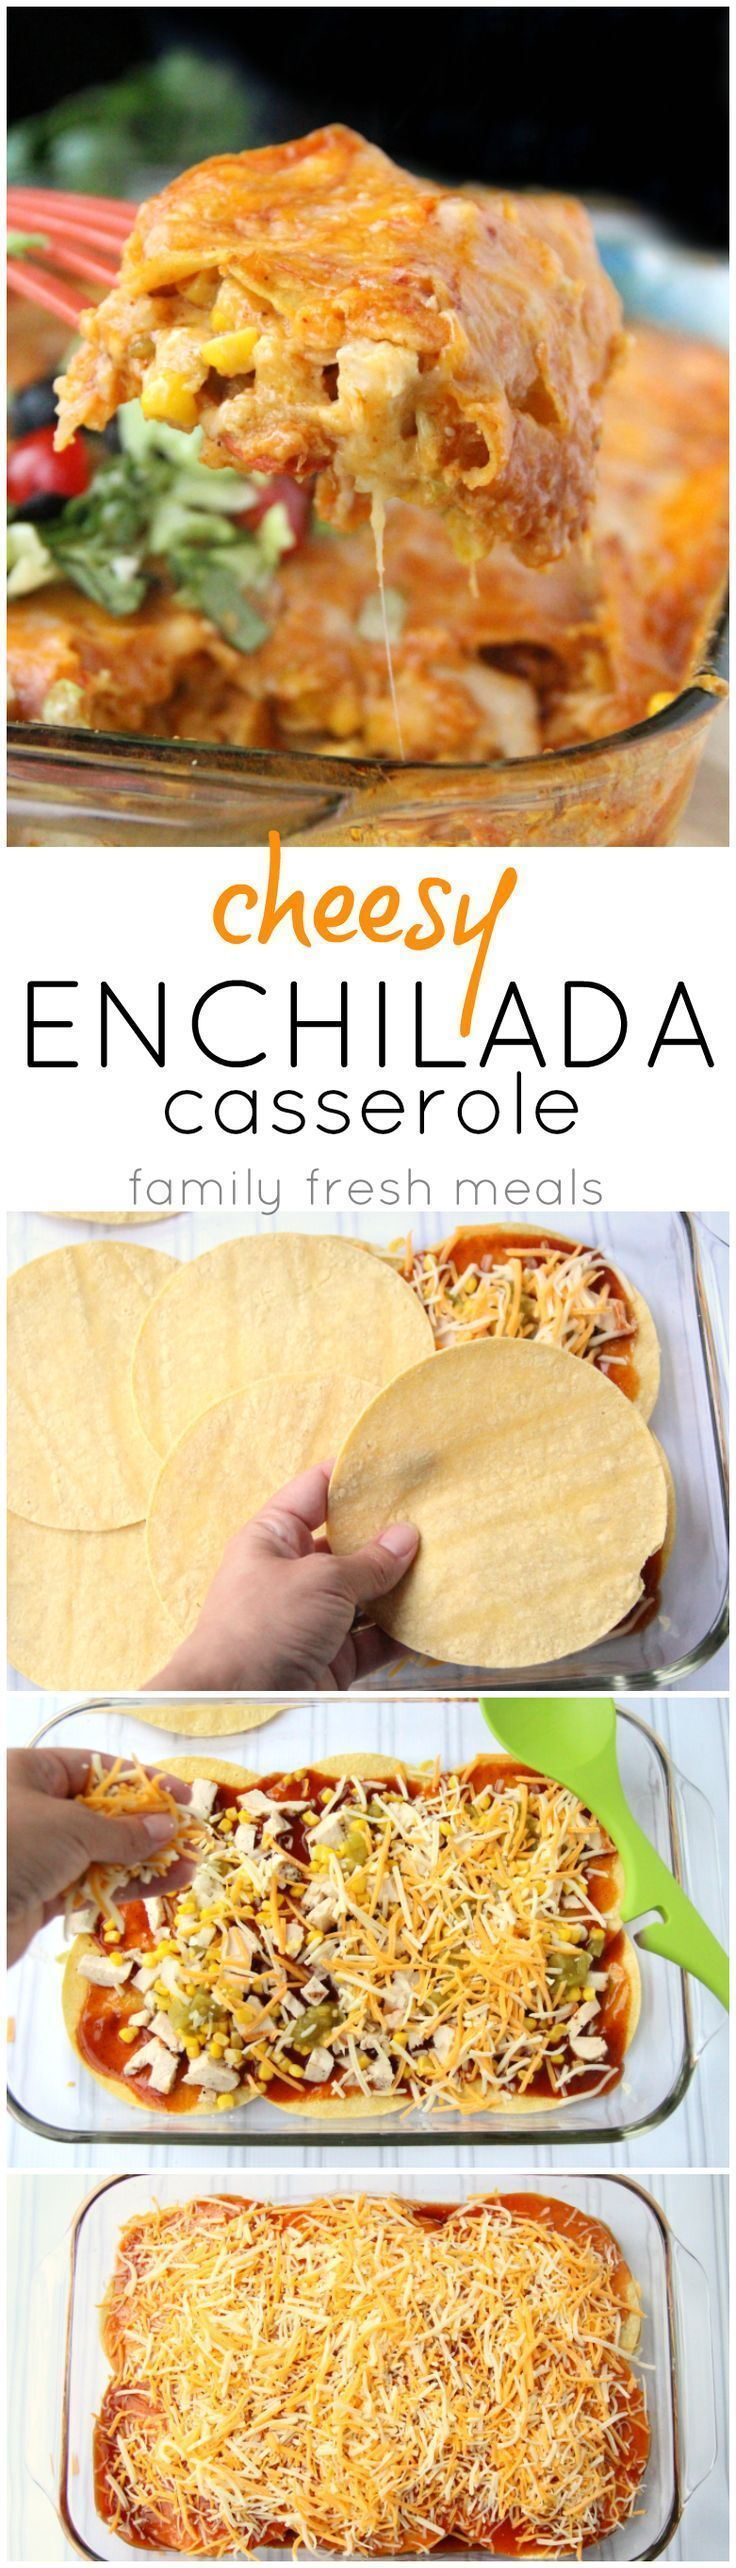 Dinner will be ready in 30 minutes! Cheesy Chicken Enchilada Casserole Recipe